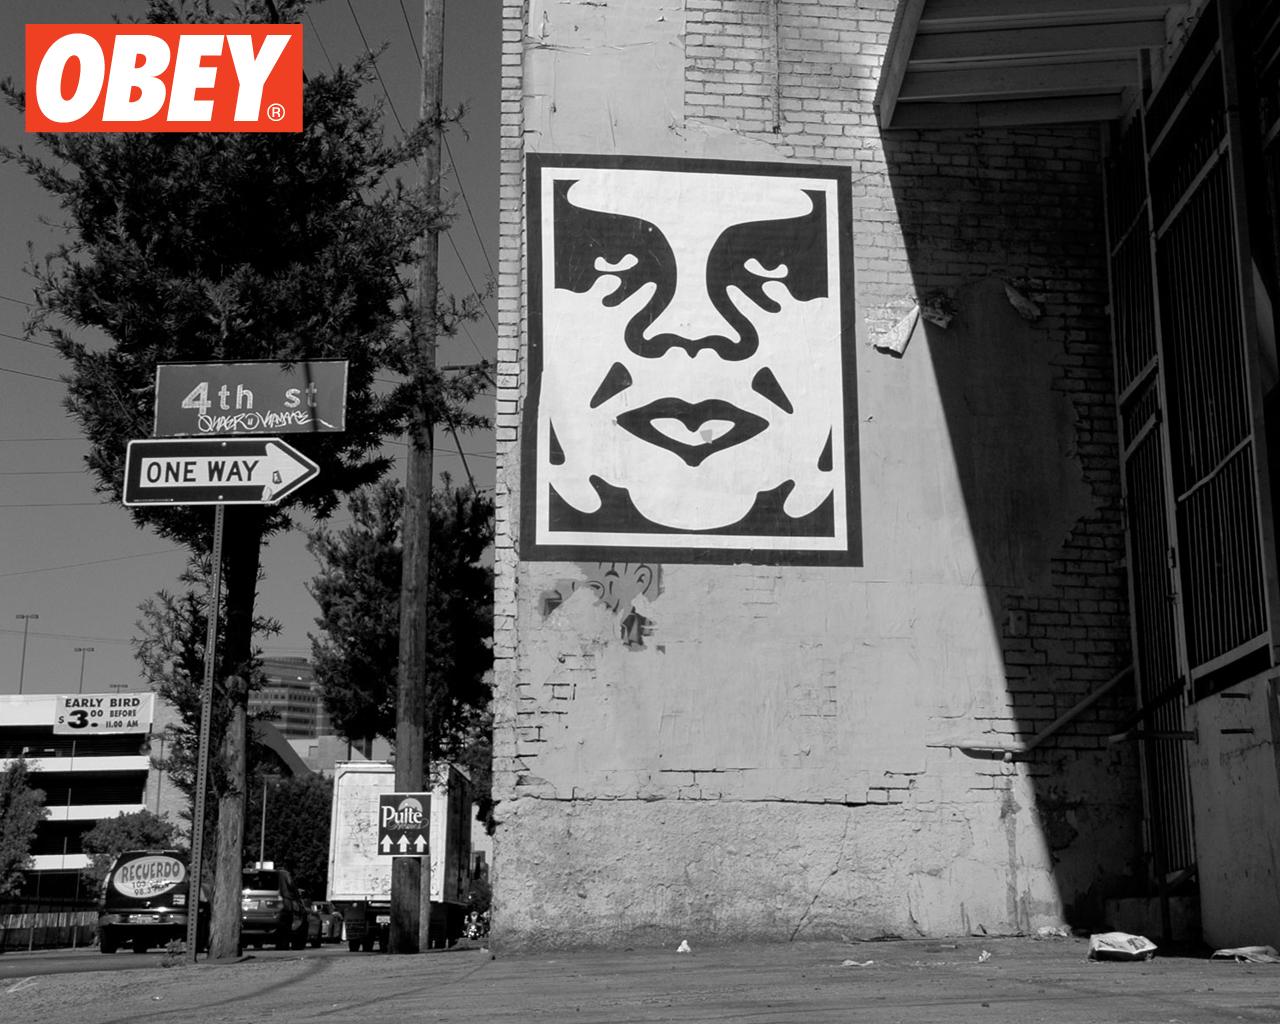 obey_wallpaper_02-349933491